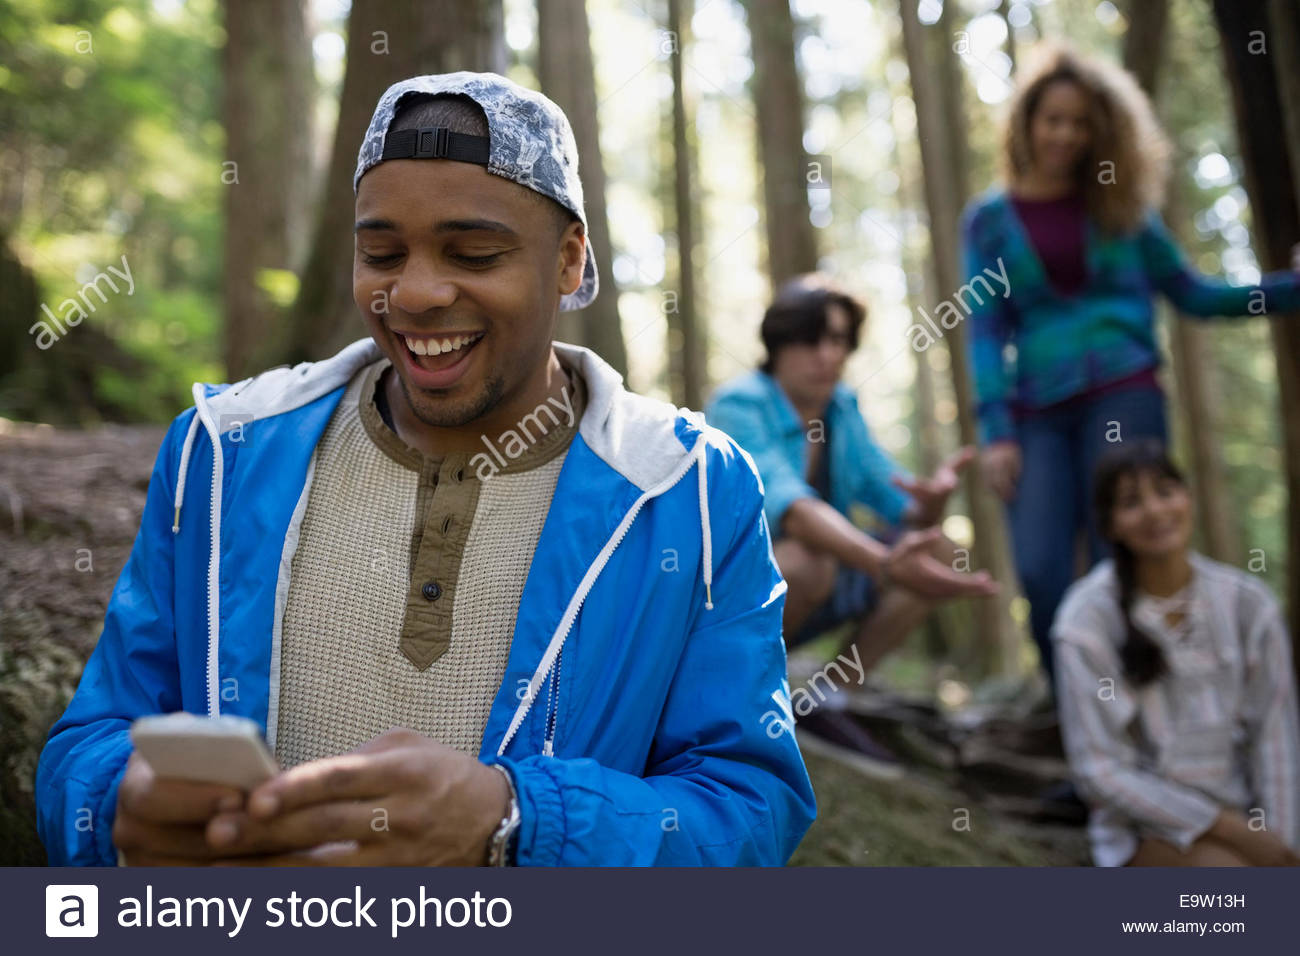 Enthusiastic young man using cell phone in woods - Stock Image